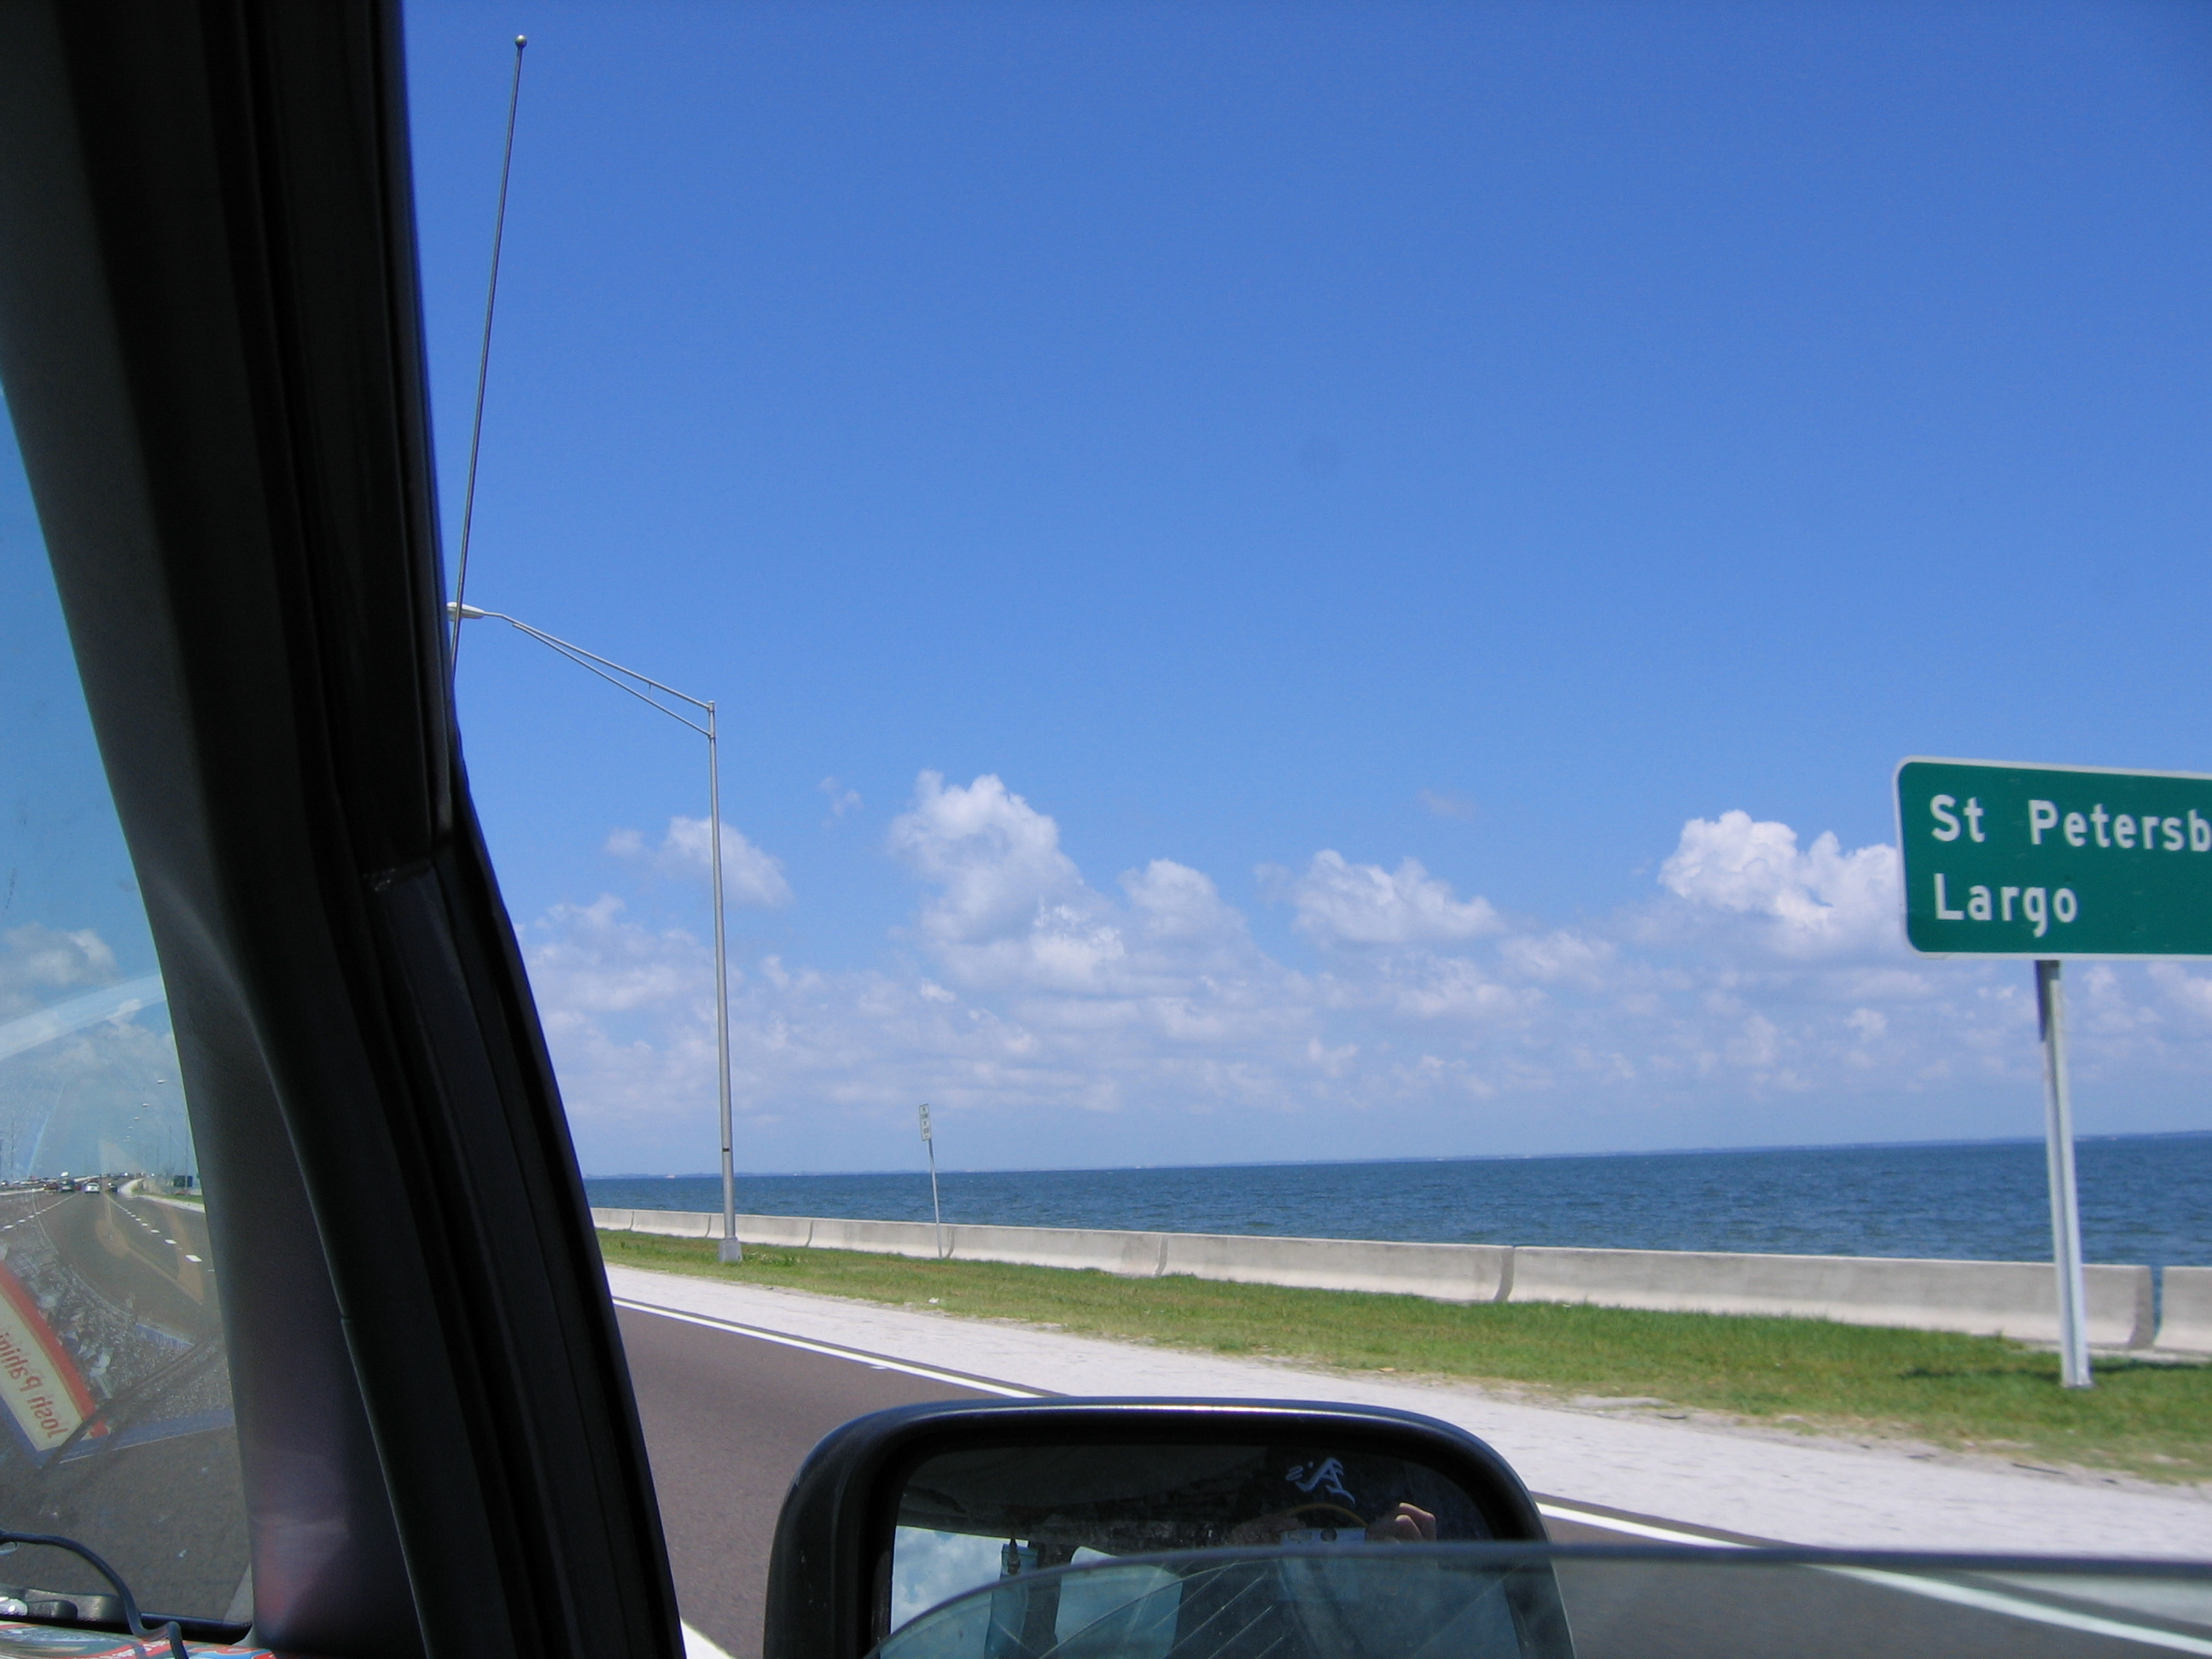 IMG_0482.jpg - On road to Tampa Bay